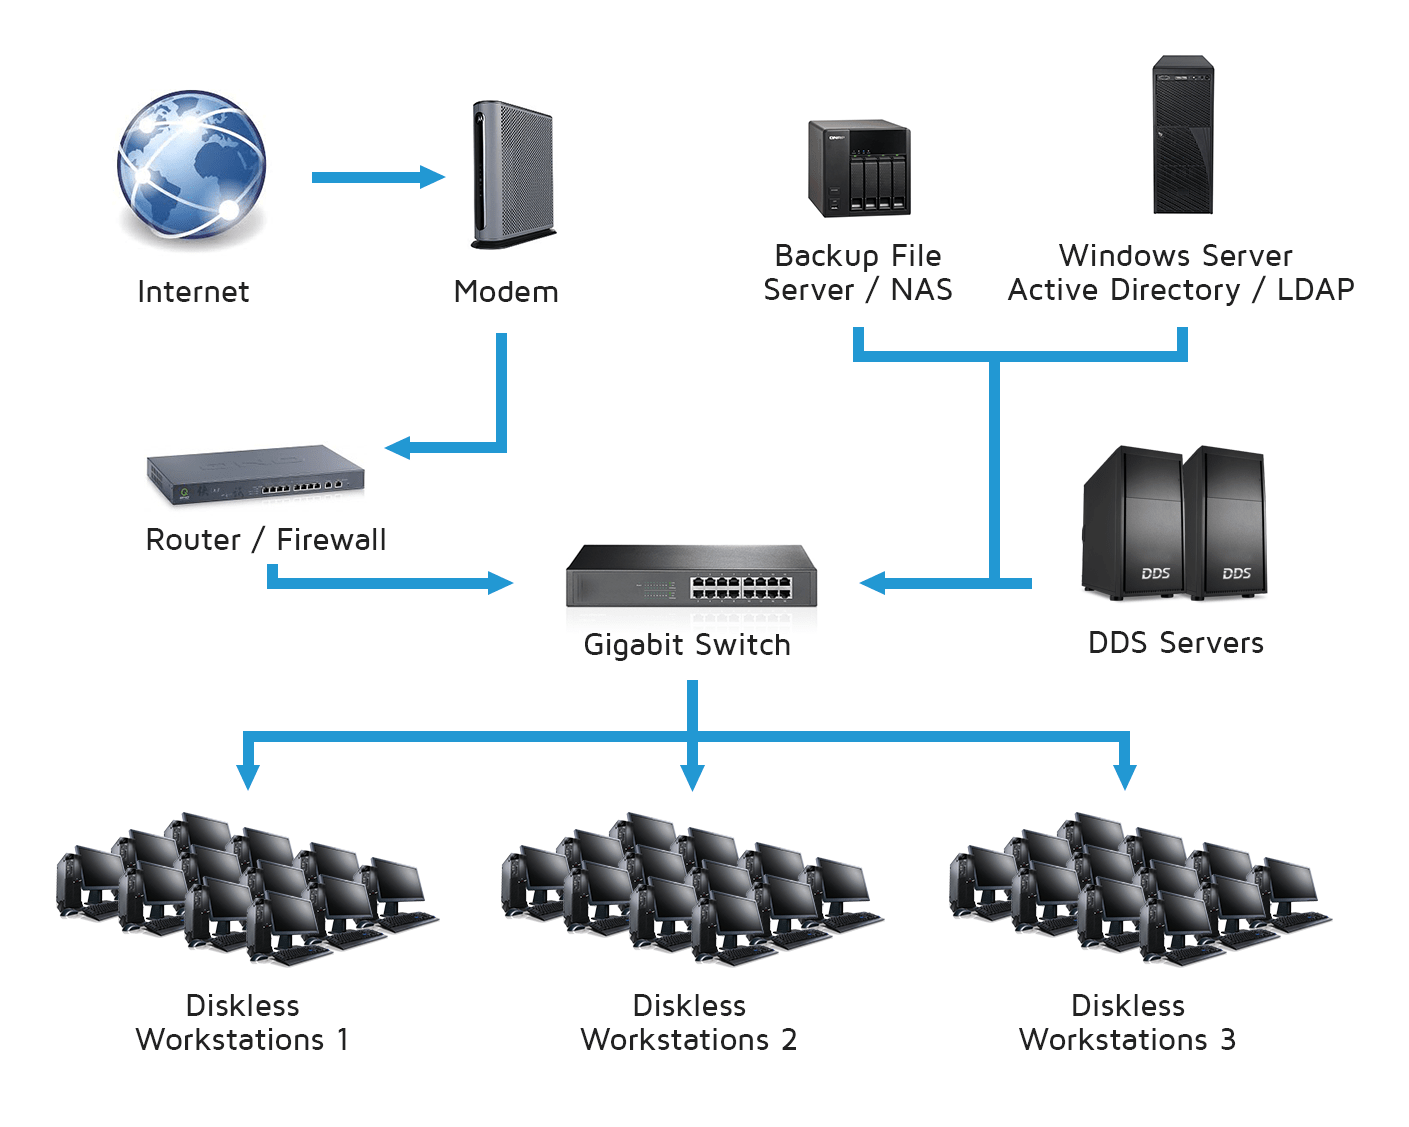 MichaelSoft-DDS-Diskless-System-Solution